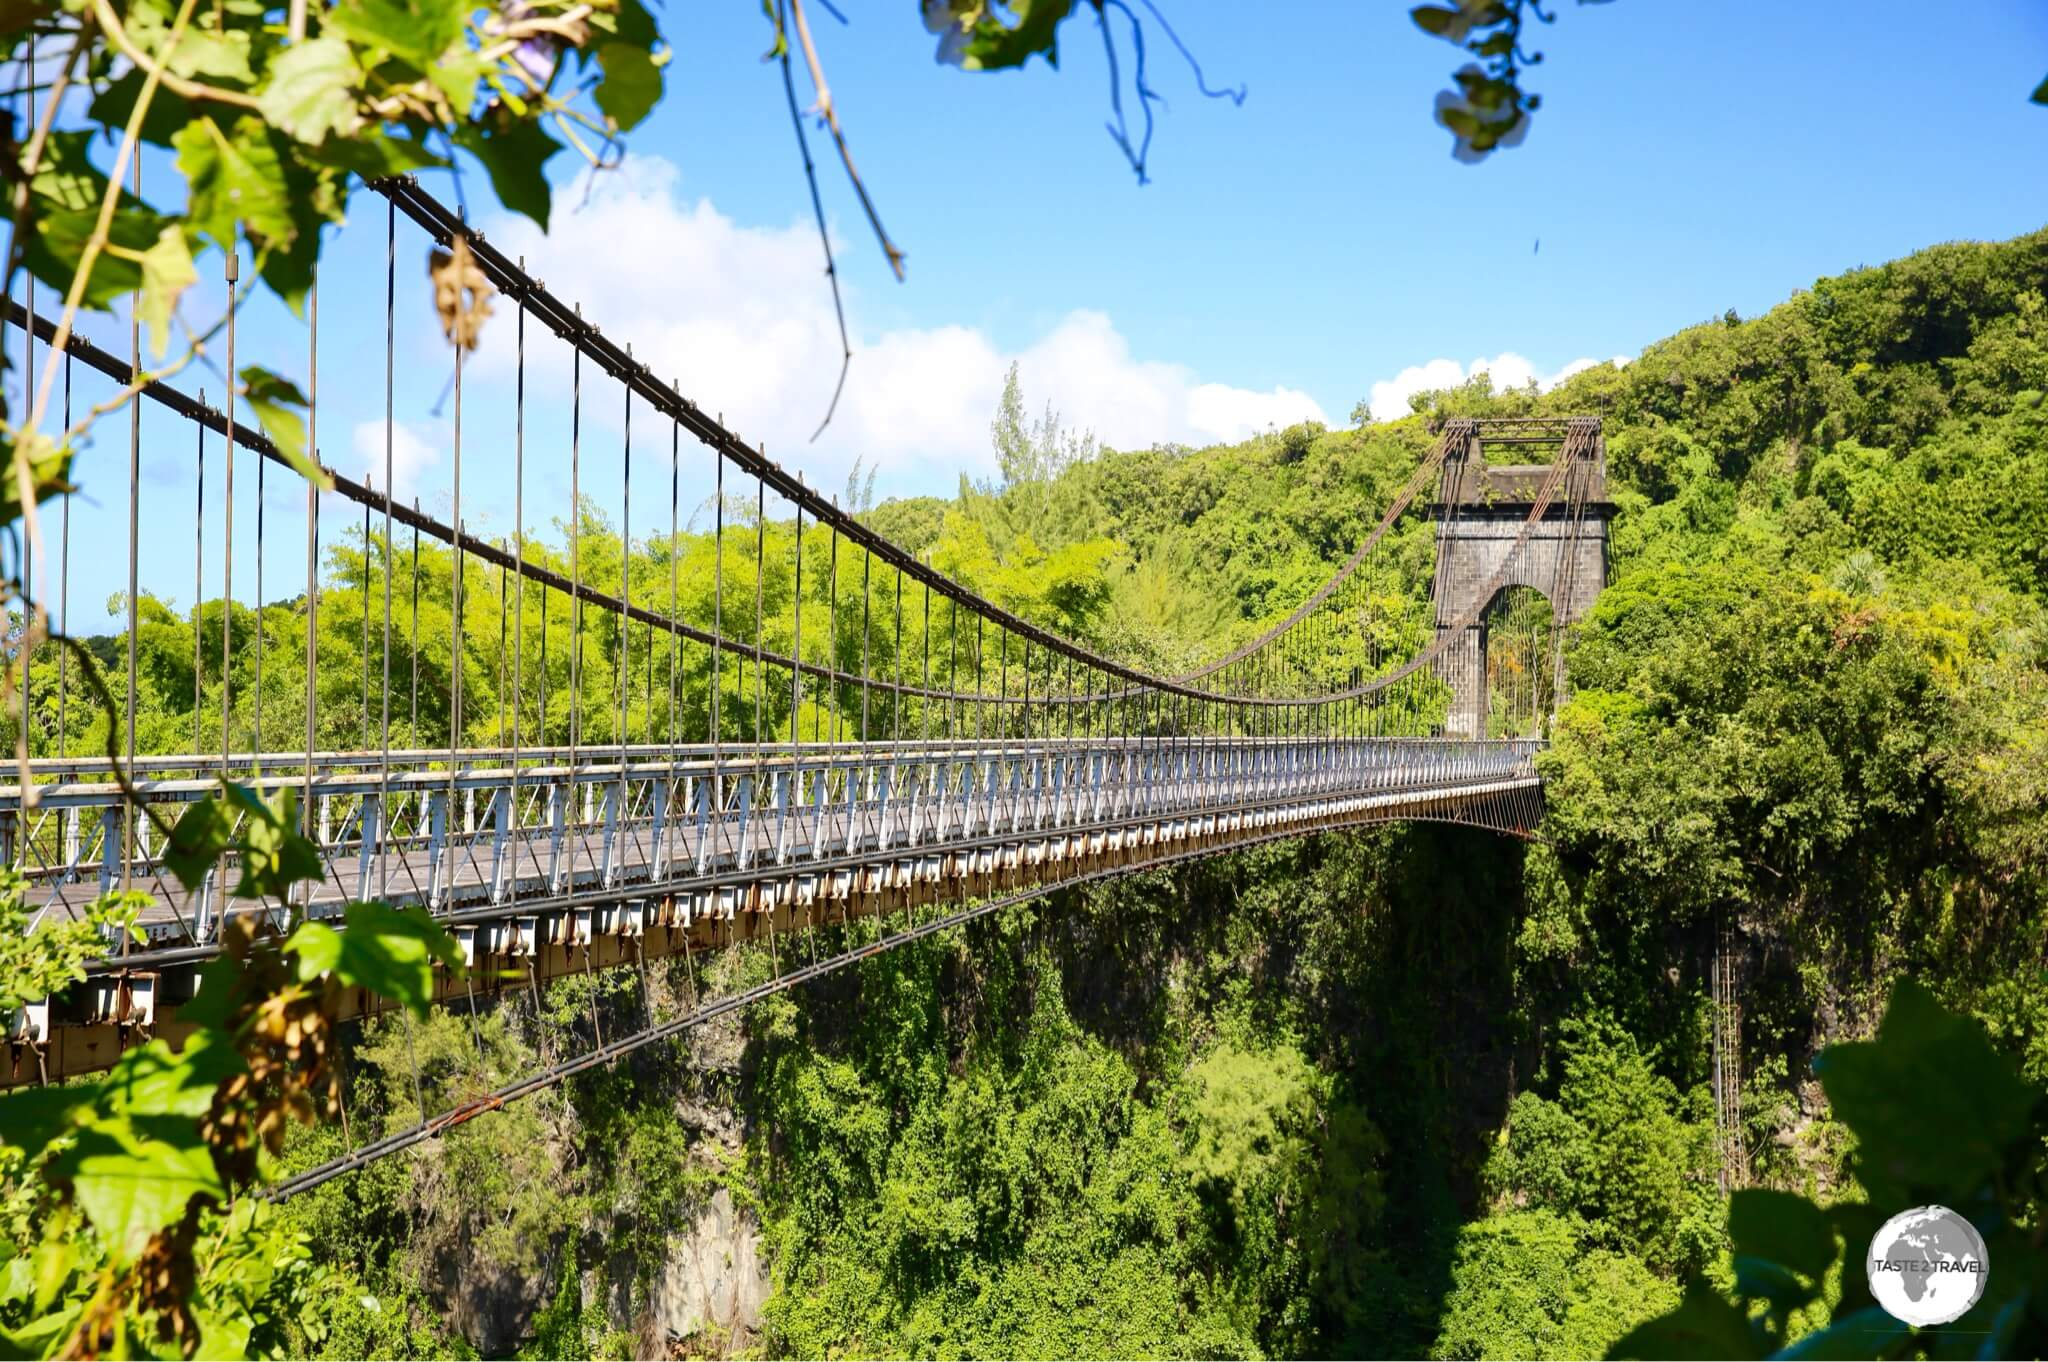 The suspension bridge has been permanently closed to pedestrian traffic.